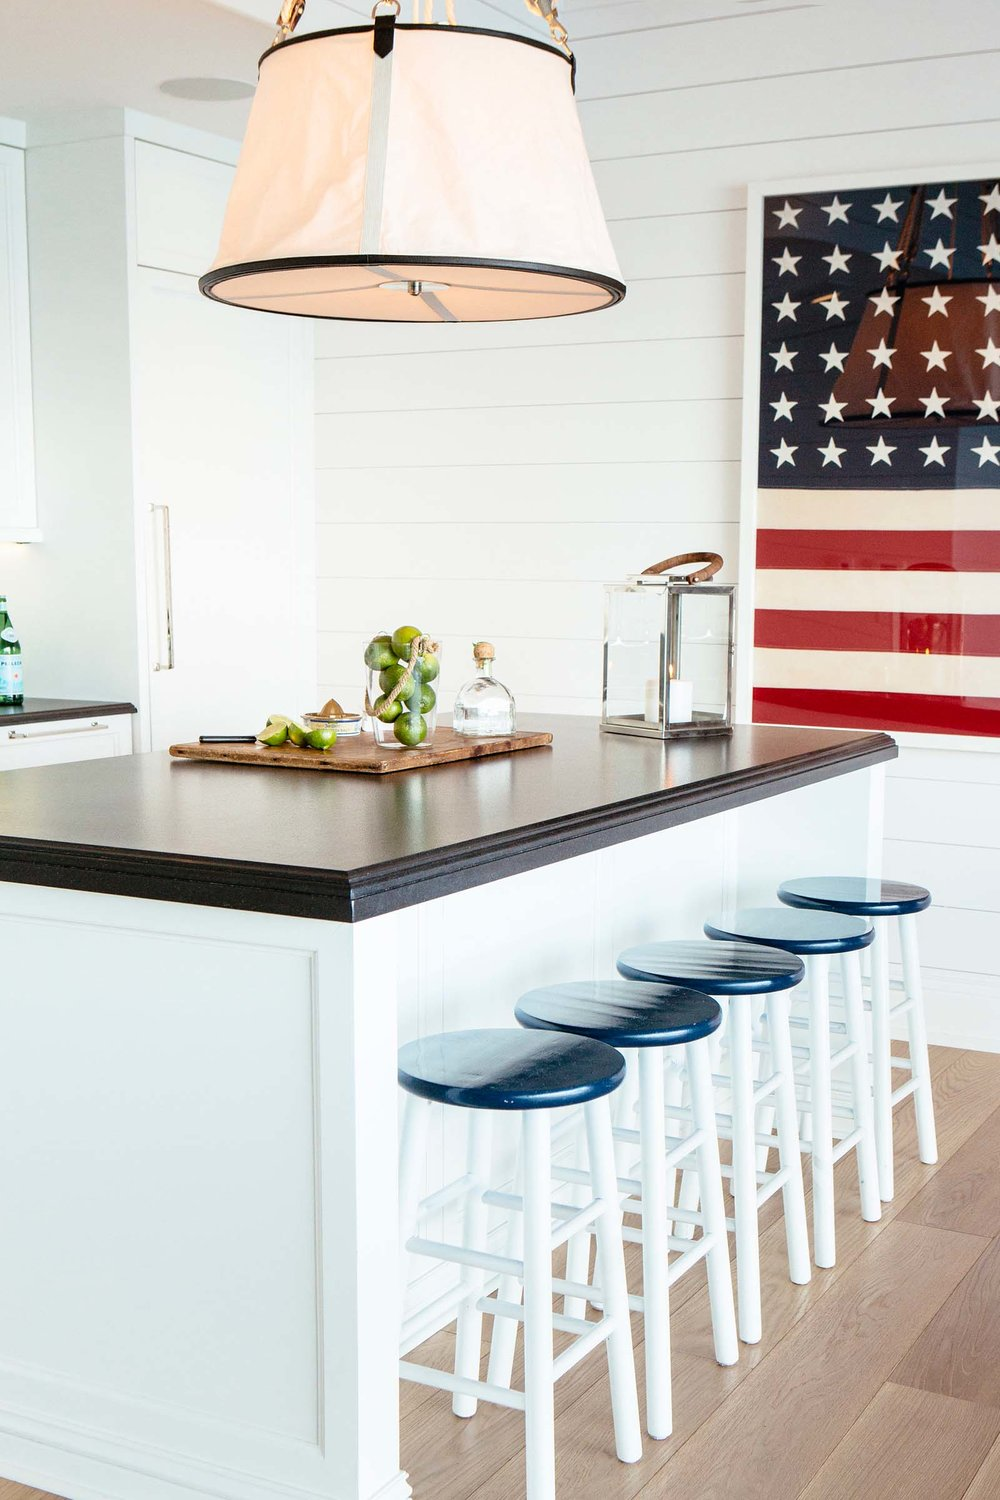 Leo_Designs_Chicago_interior_design_grand_haven_beach_refuge16.jpg